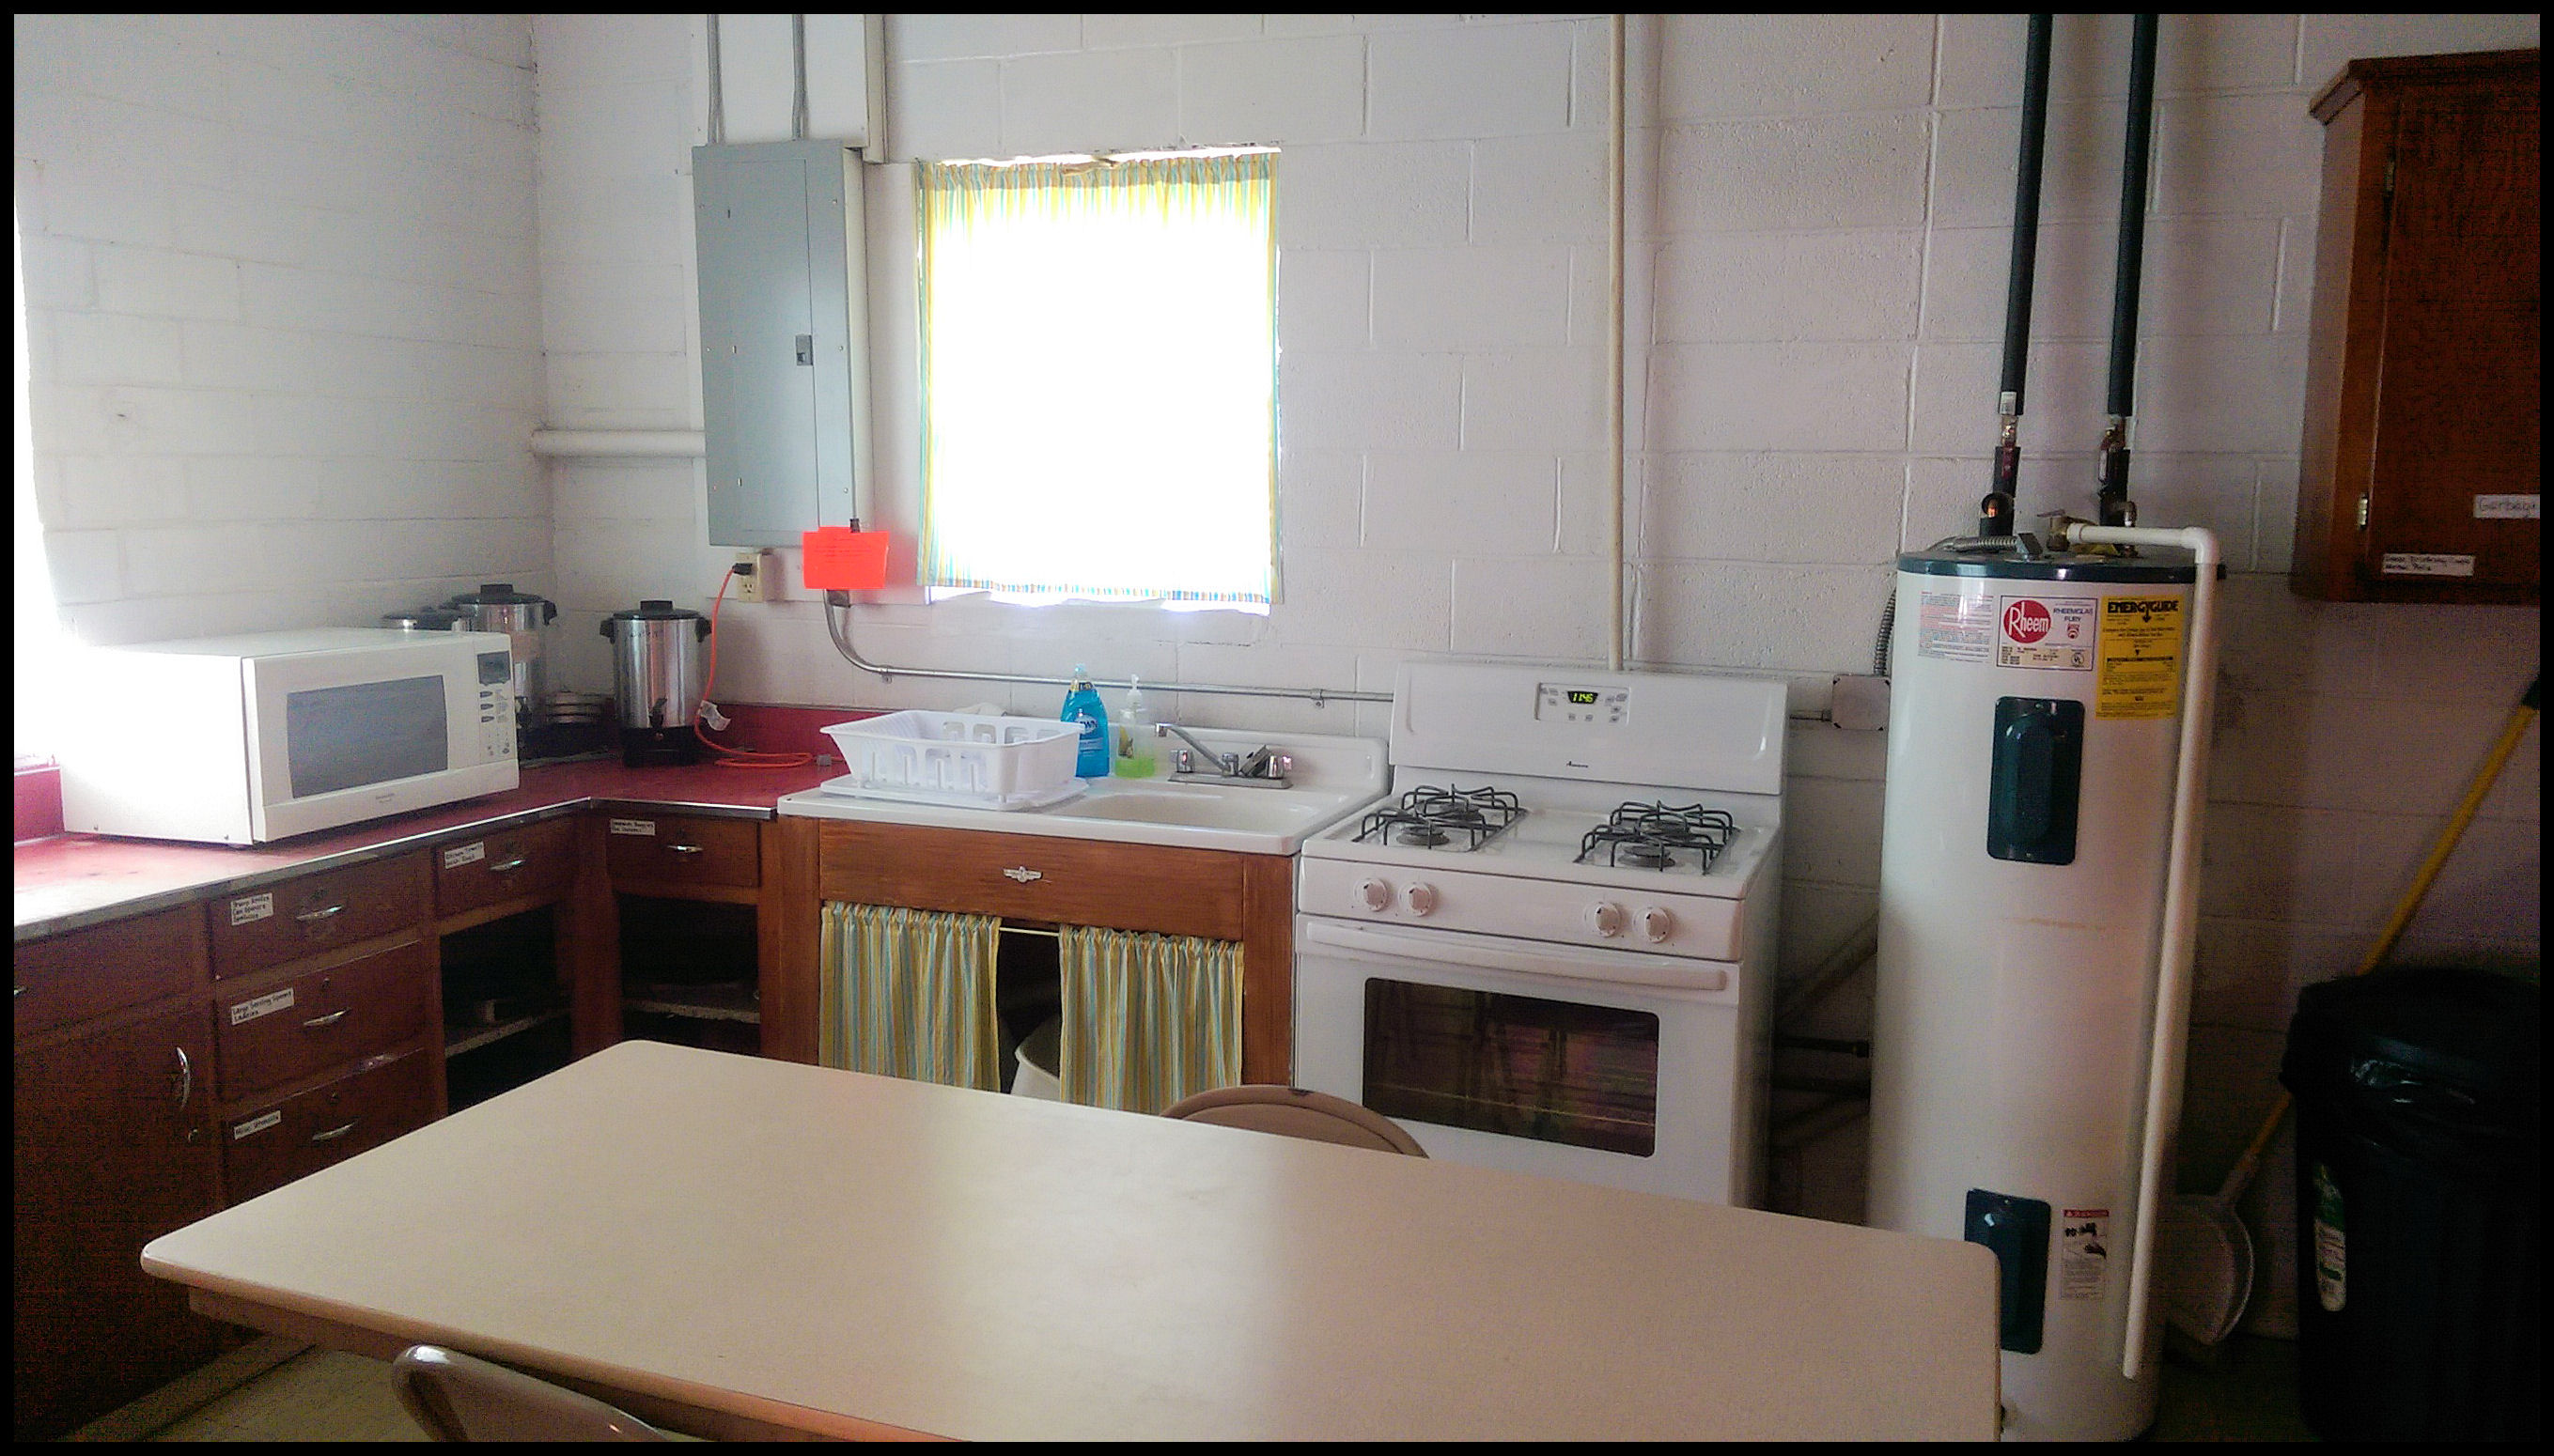 Hazleton American Legion Community Hall - Kitchen